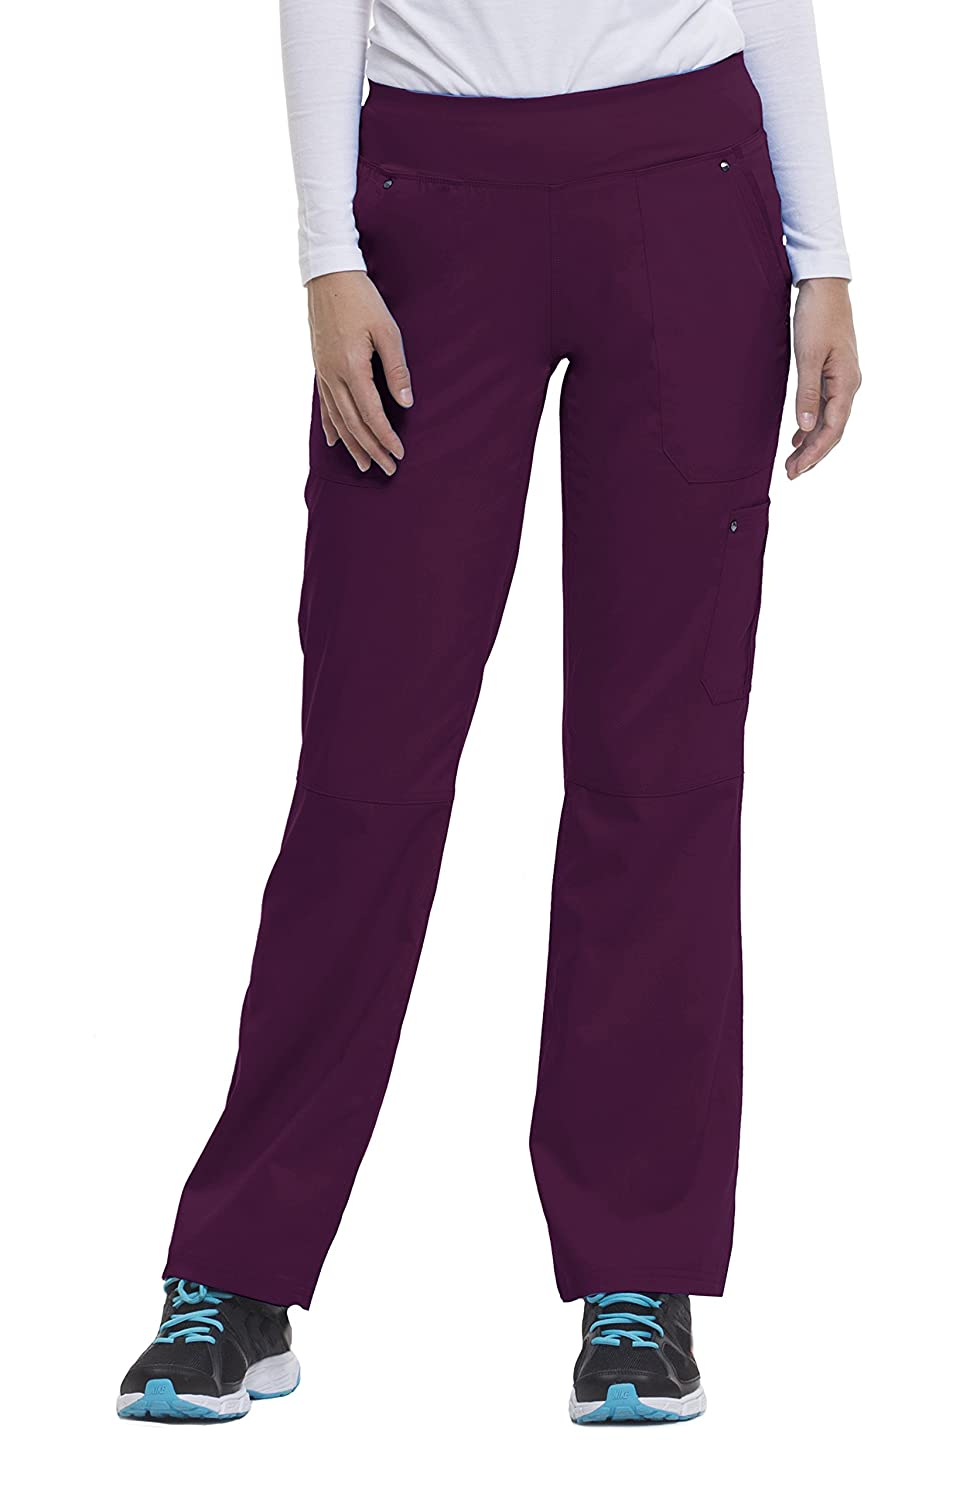 What Color Shirt Goes With Purple Jeans